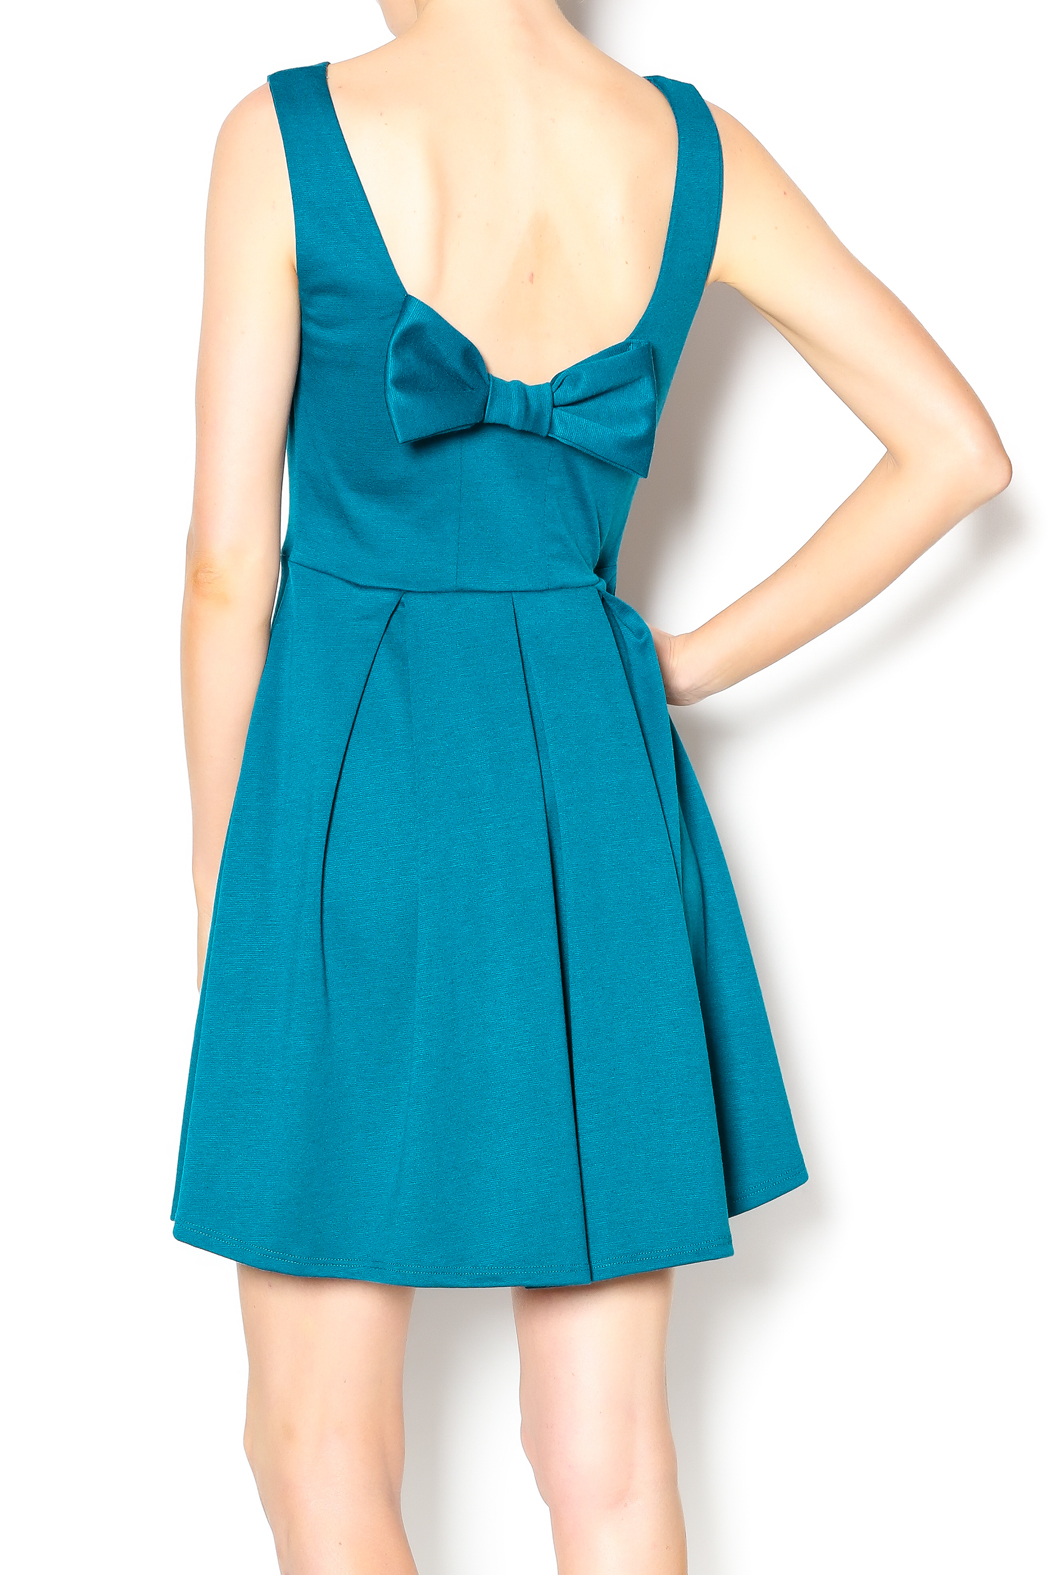 Apricity January Bow Dress - Back Cropped Image